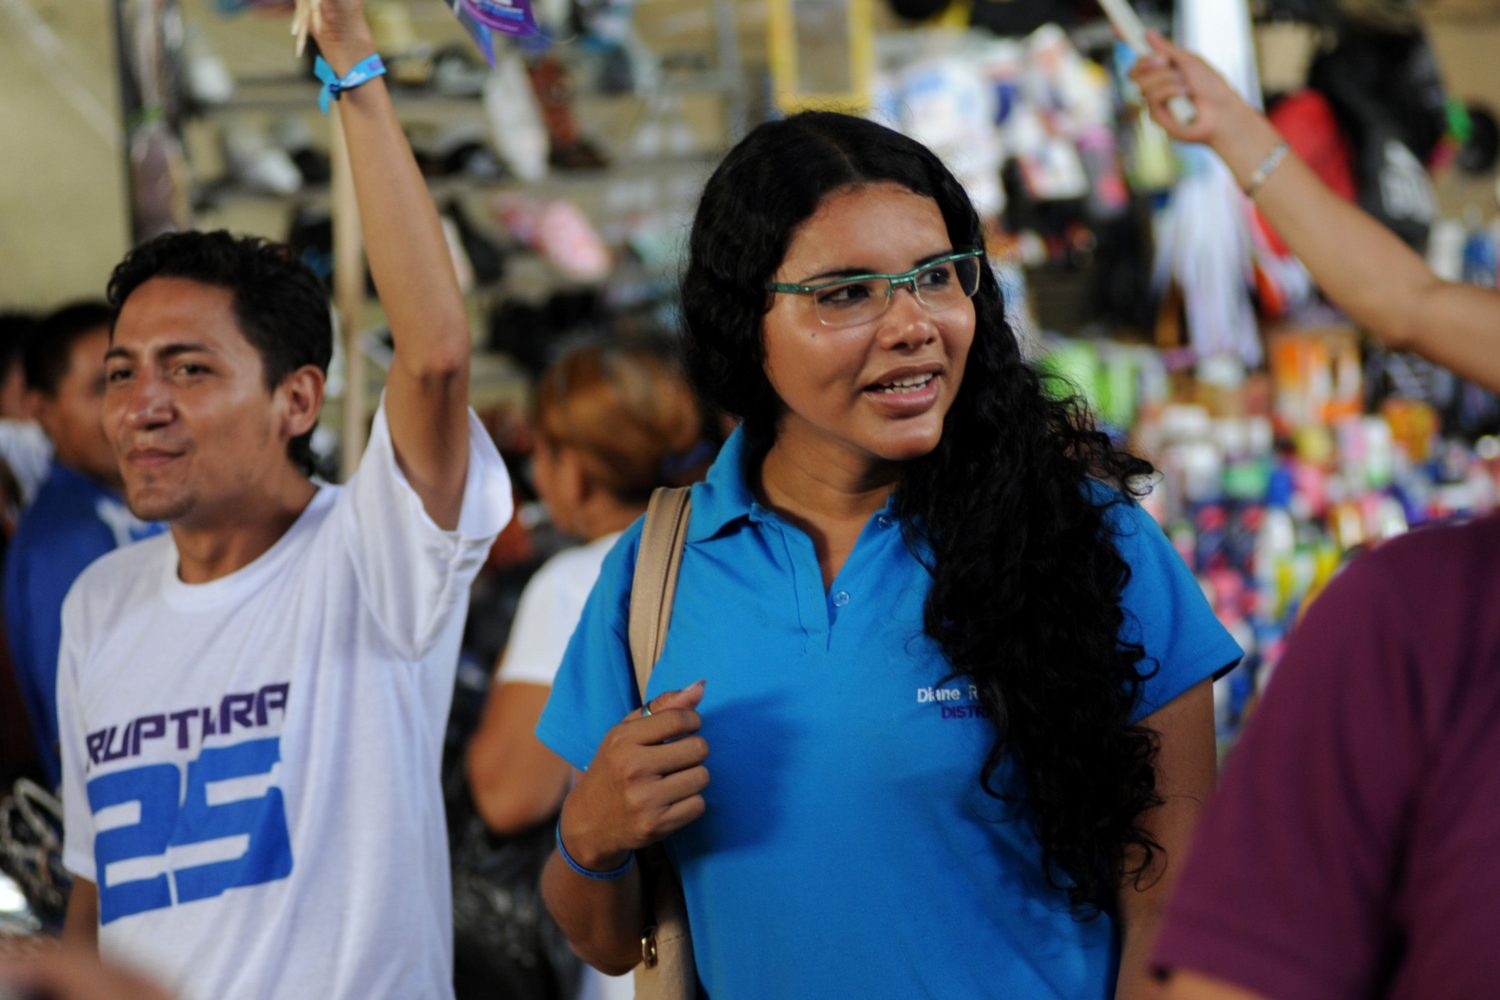 Diane Rodriguez campaigning for election (CESAR PASACA/AFP/Getty Images)